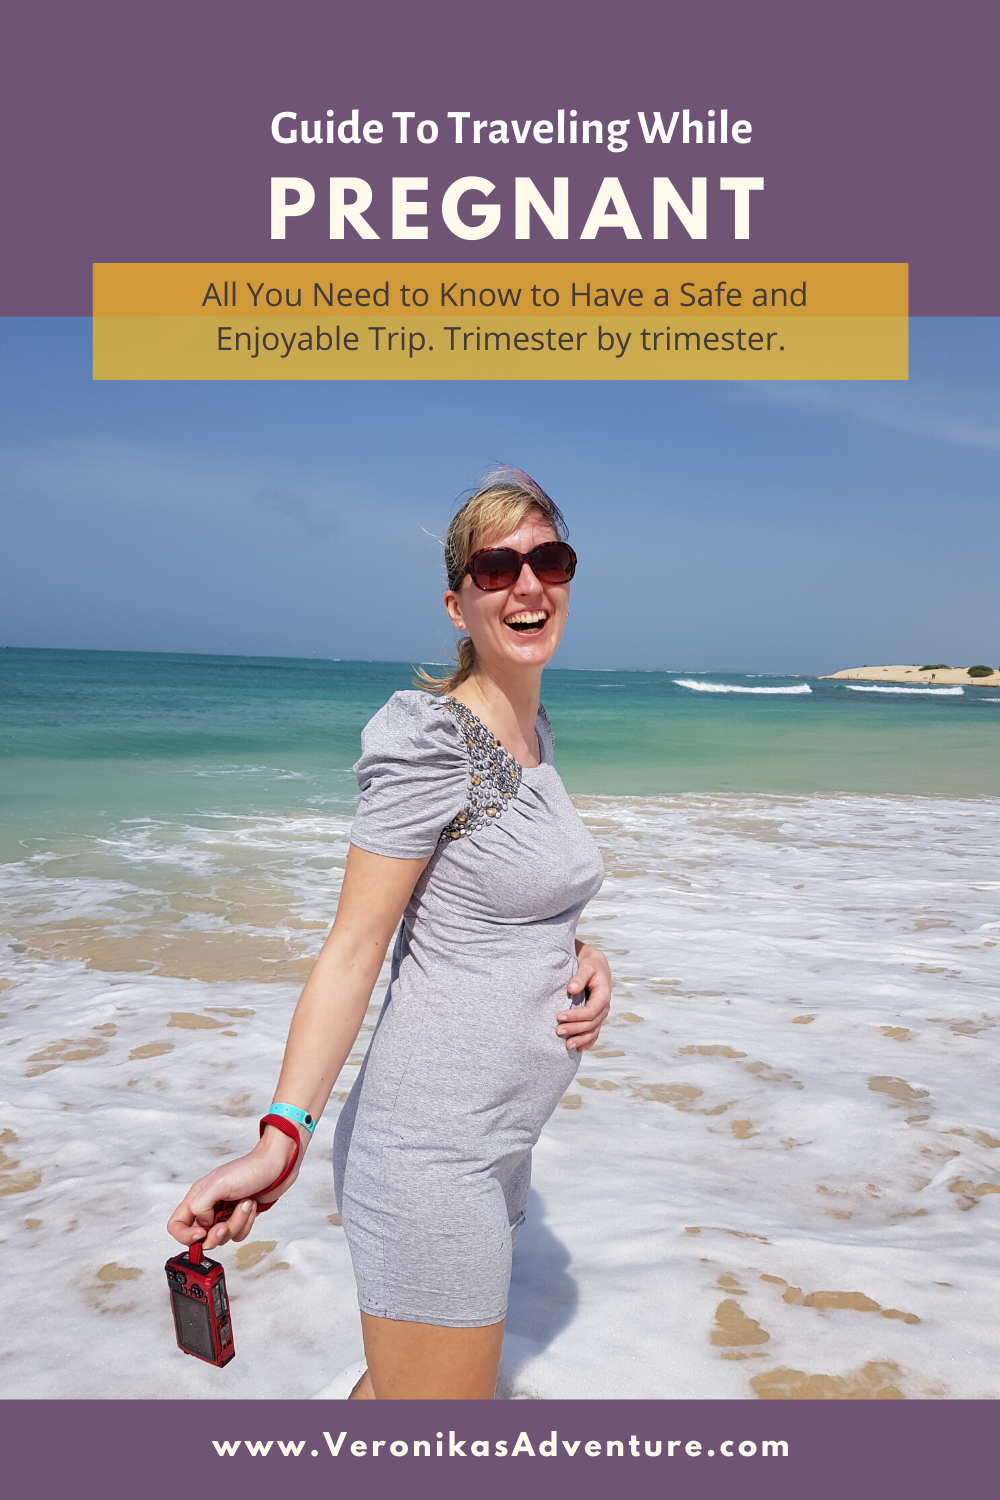 Well, just because you're pregnant, doesn't mean you can't travel! With careful preparation, traveling while pregnant can be both safe and enjoyable. Use my TOP 7 travel tips for any expecting mothers thinking of going on a trip.